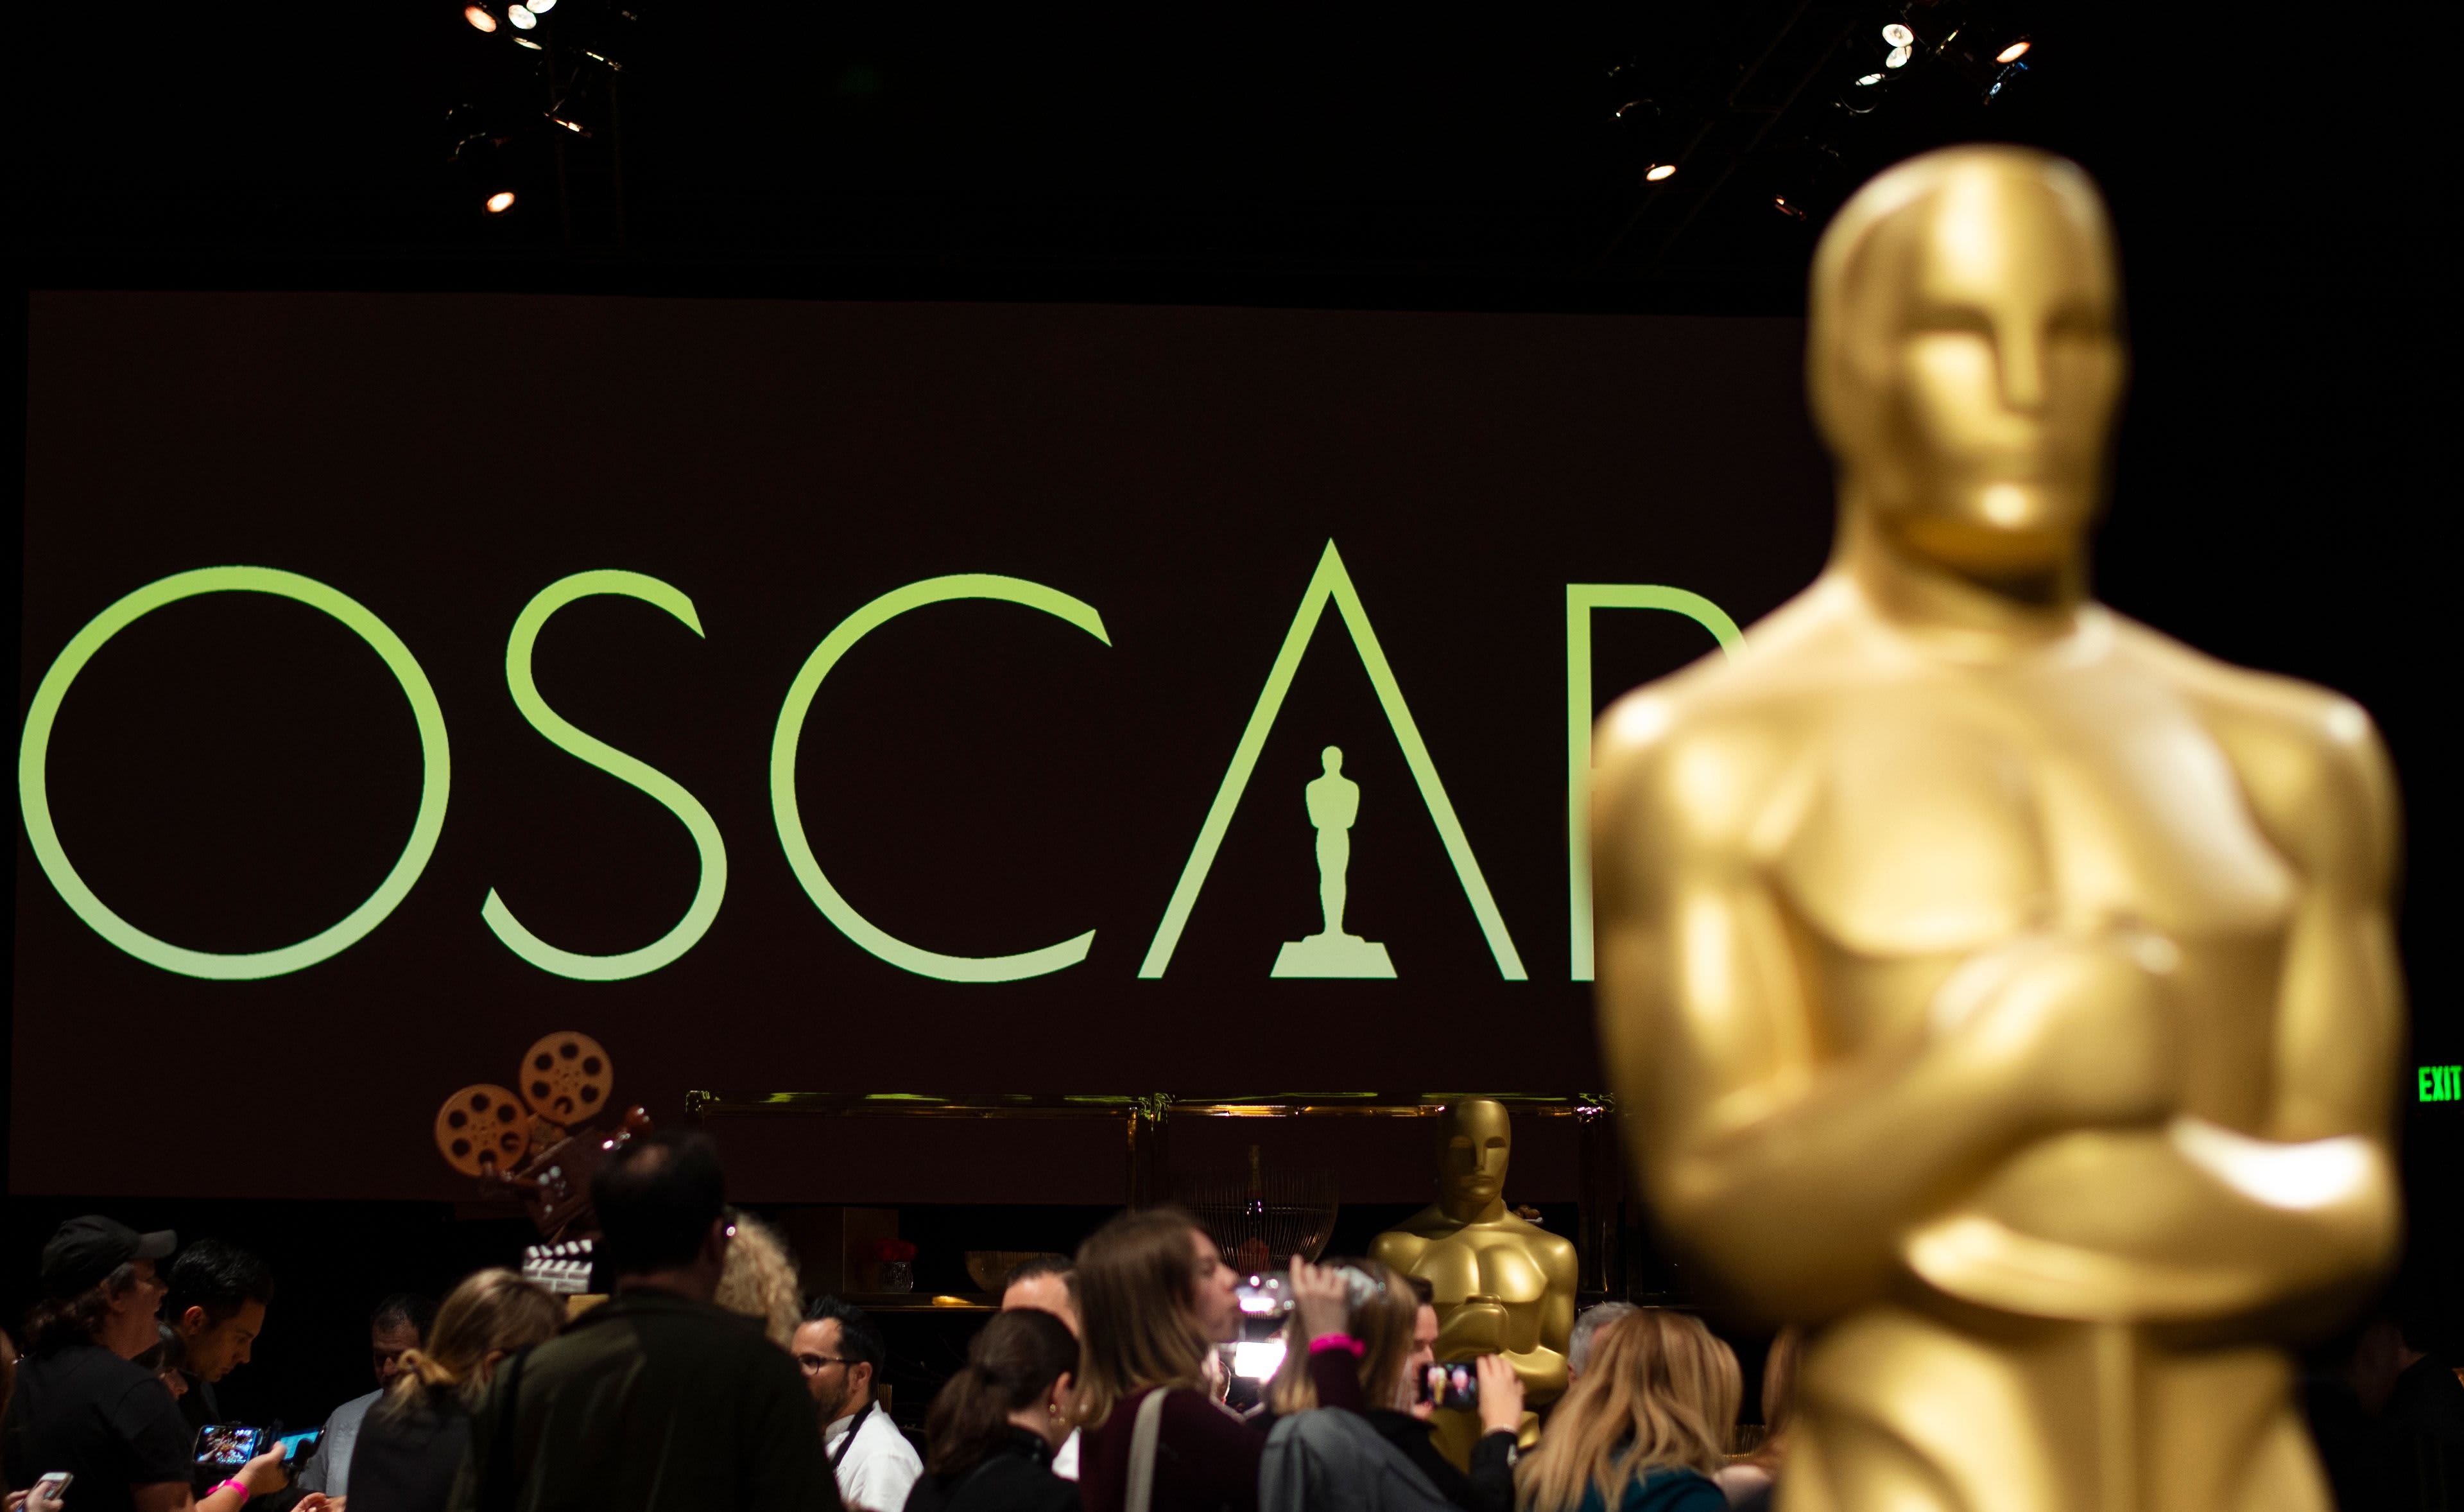 Oscars sells out ad inventory despite awards show ratings declines